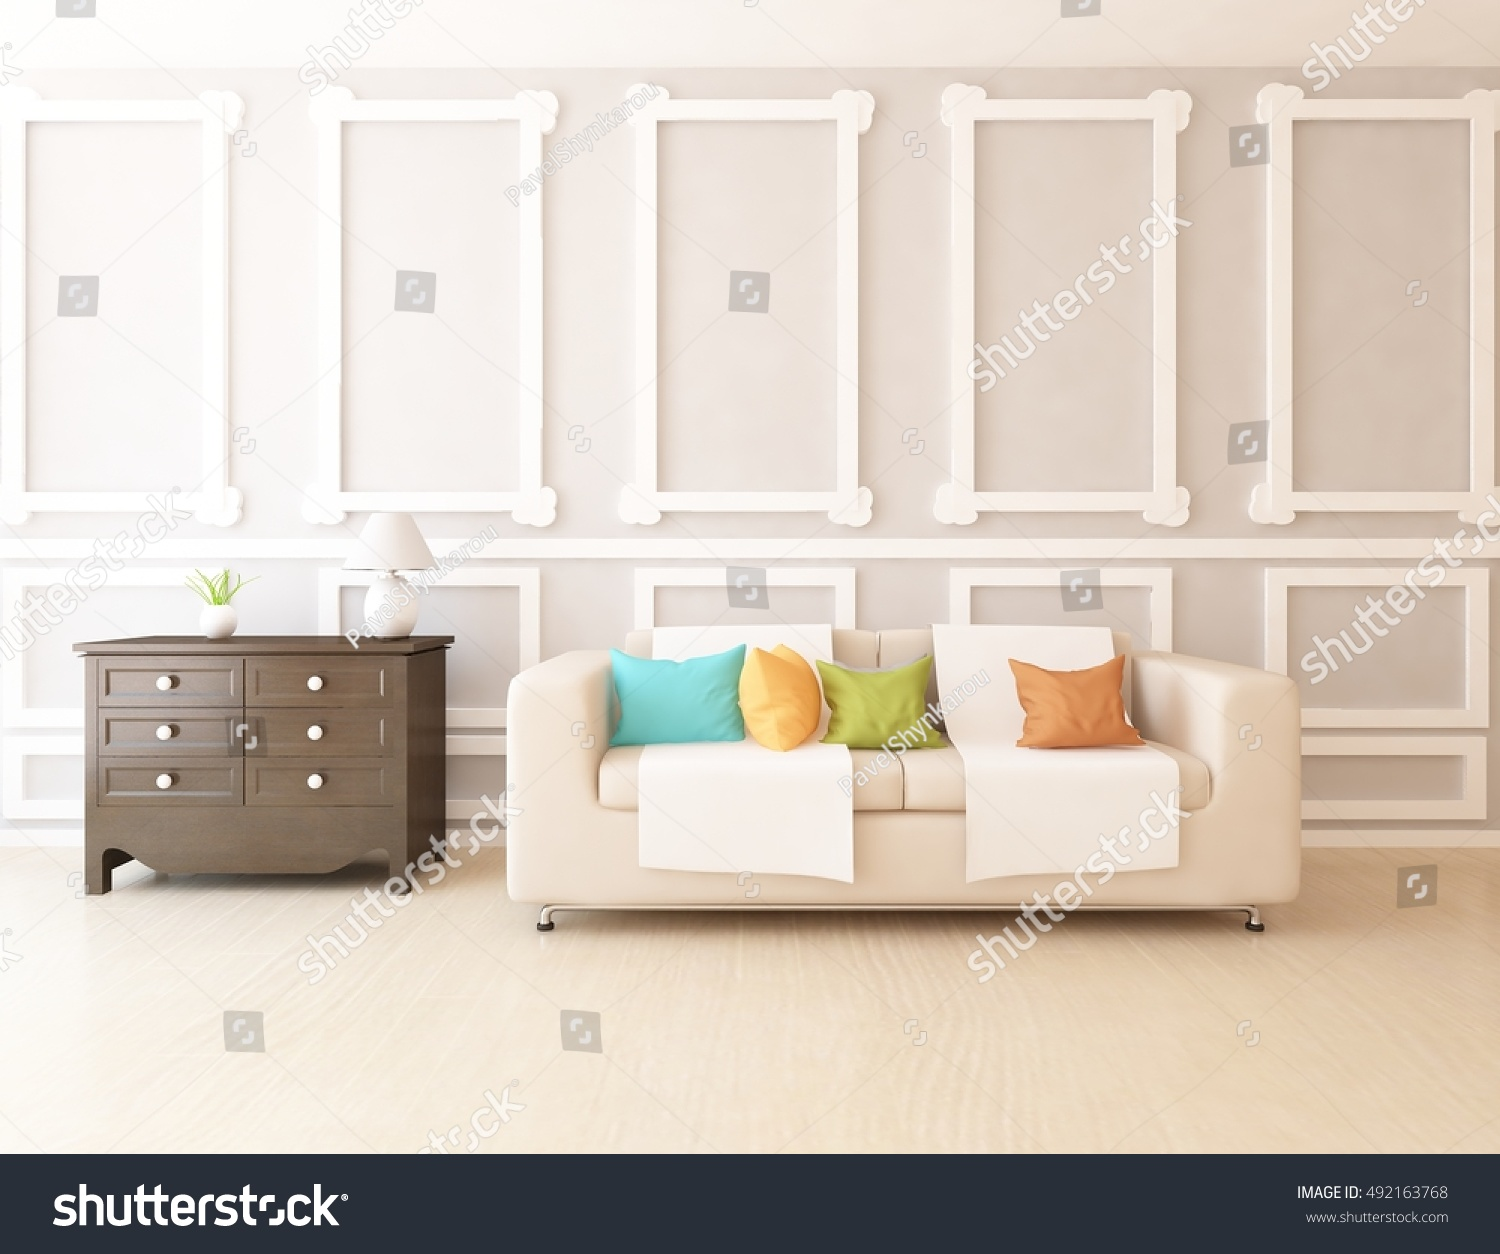 mrbaumbach.co] 100+ Dresser In Living Room Images | Home Living Room ...